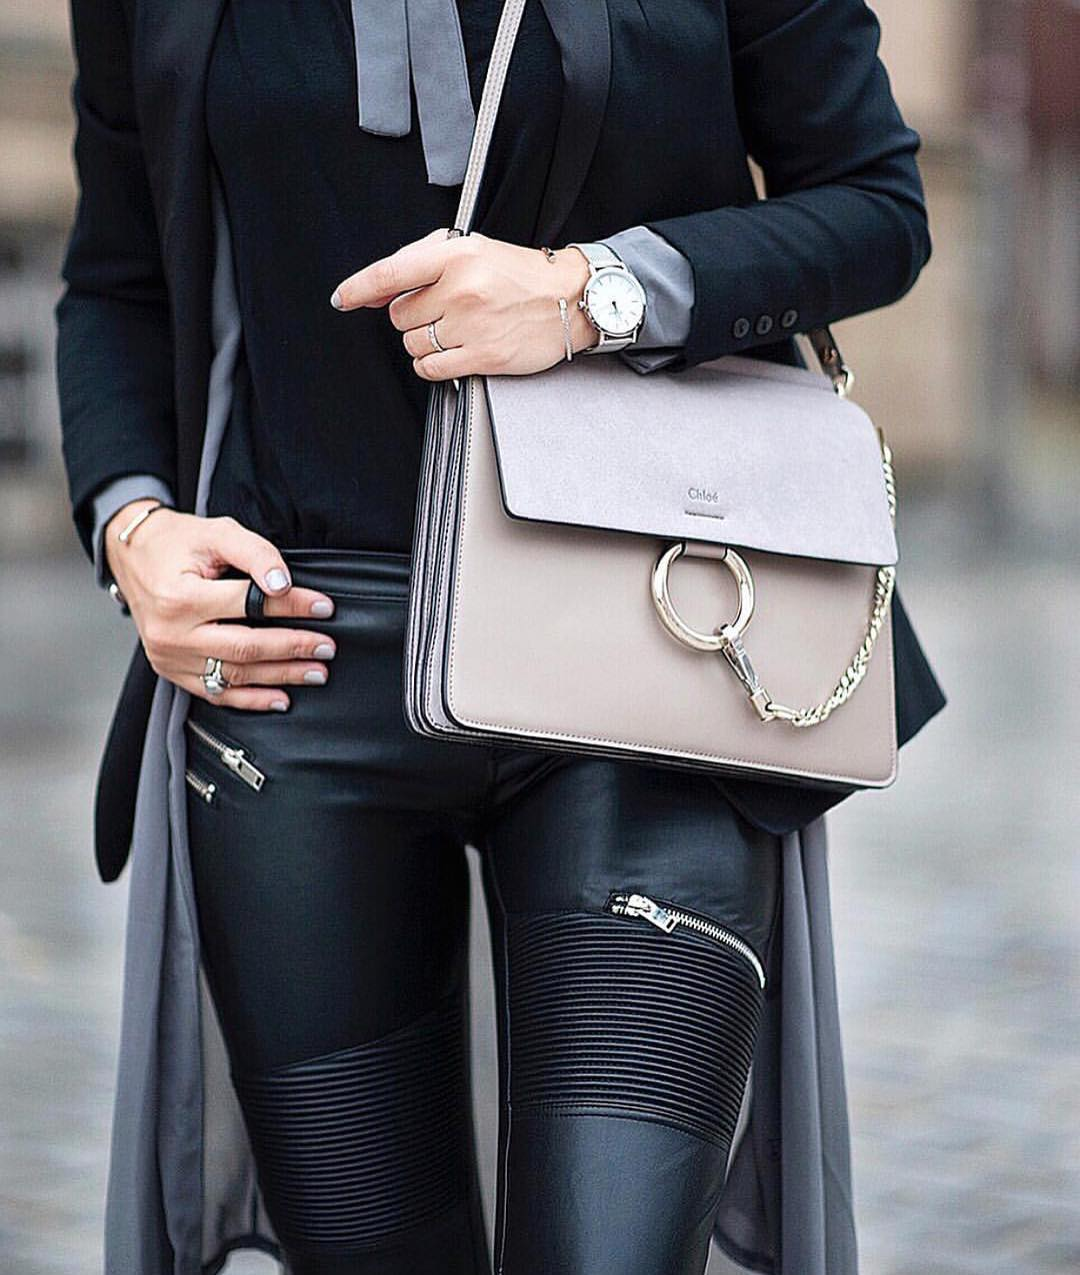 How To Wear Black Leather Biker Pants With Zip-Closures 2020